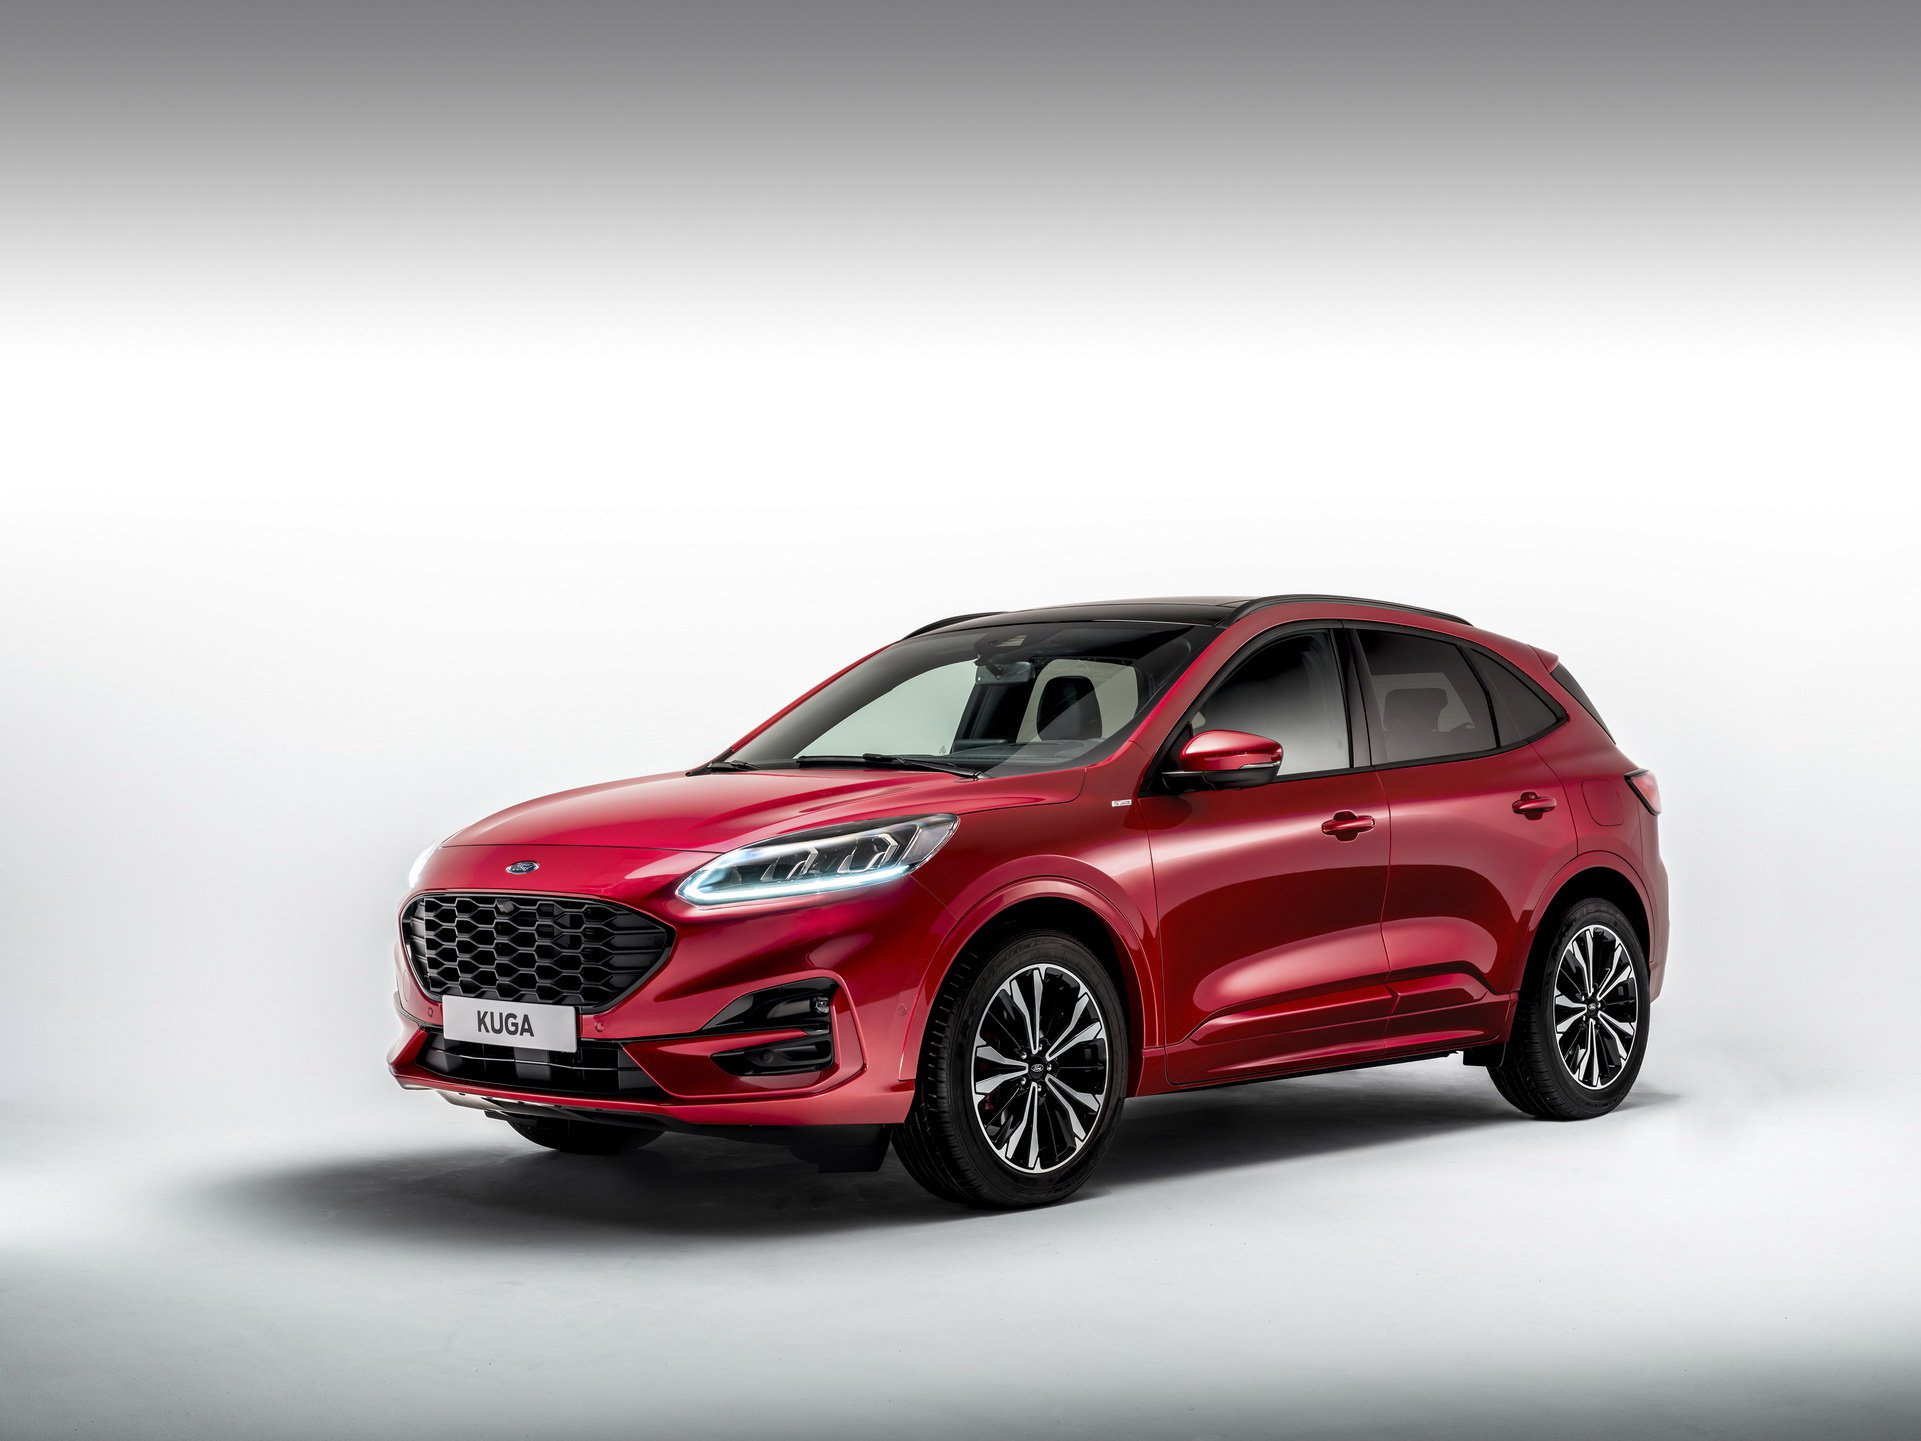 Larger, Lighter 2020 Ford Kuga Debuts With Three Hybrid Engines - autoevolution